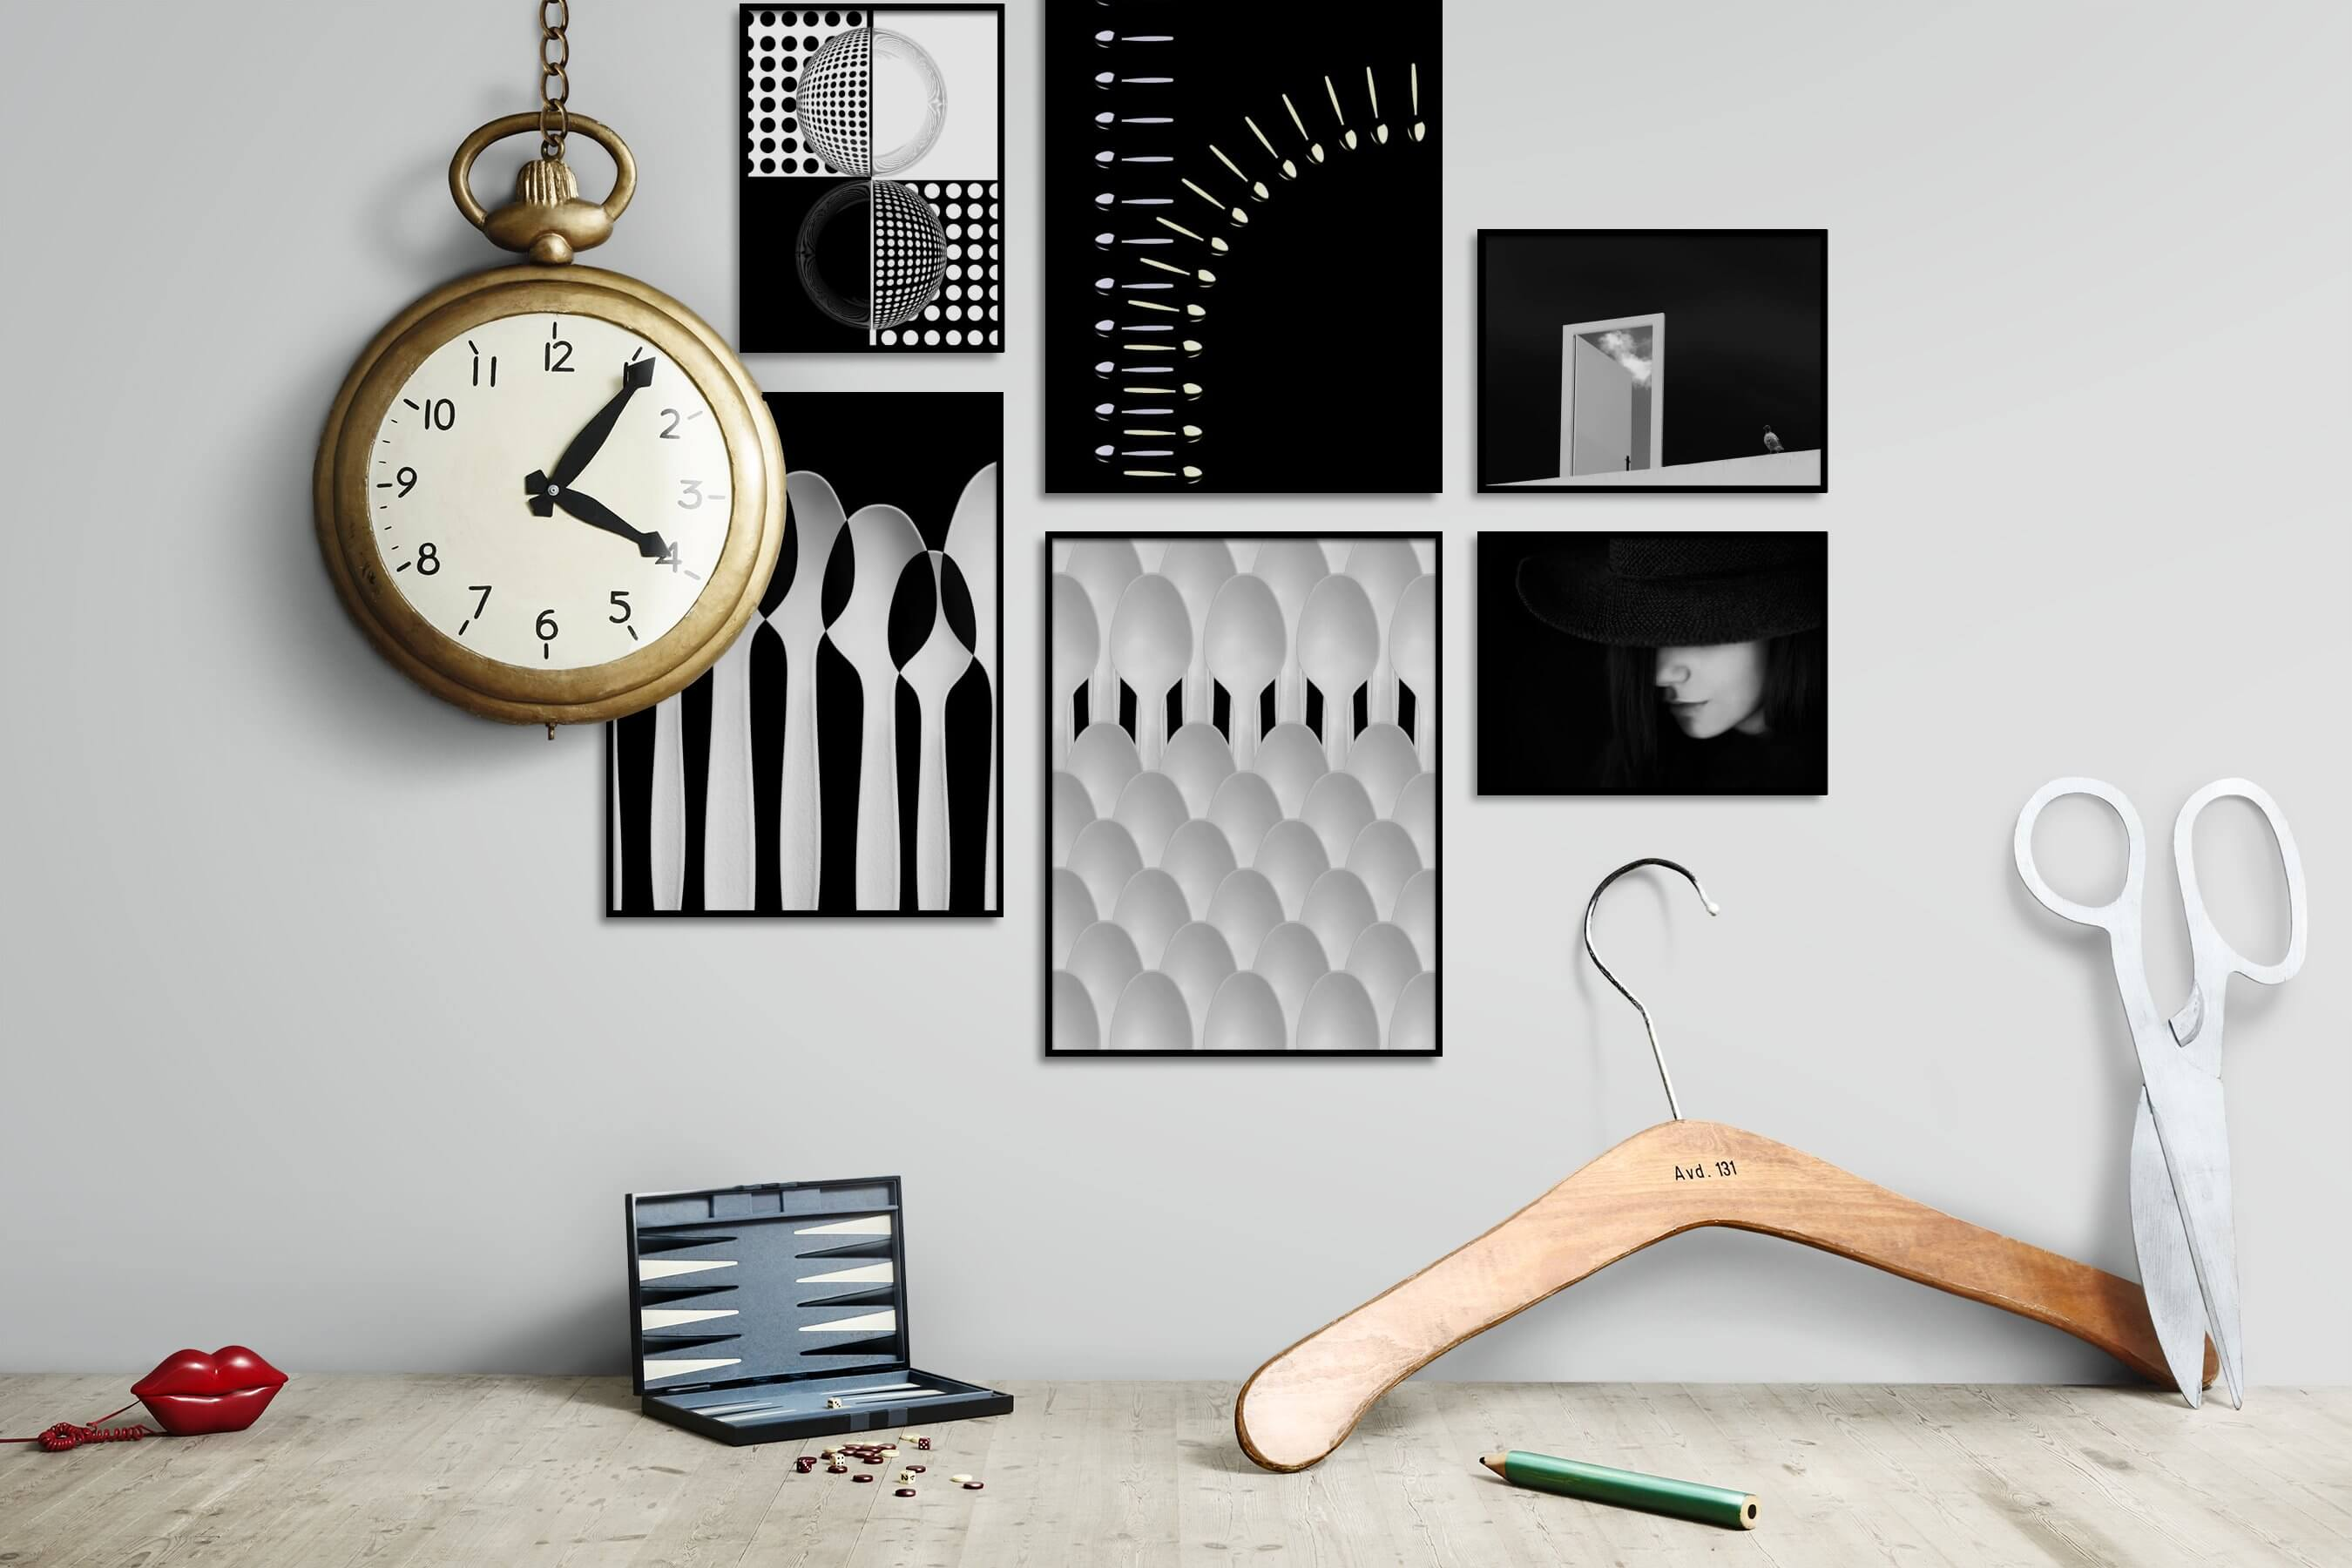 Gallery wall idea with six framed pictures arranged on a wall depicting Black & White, For the Maximalist, Dark Tones, For the Minimalist, Fashion & Beauty, and For the Moderate